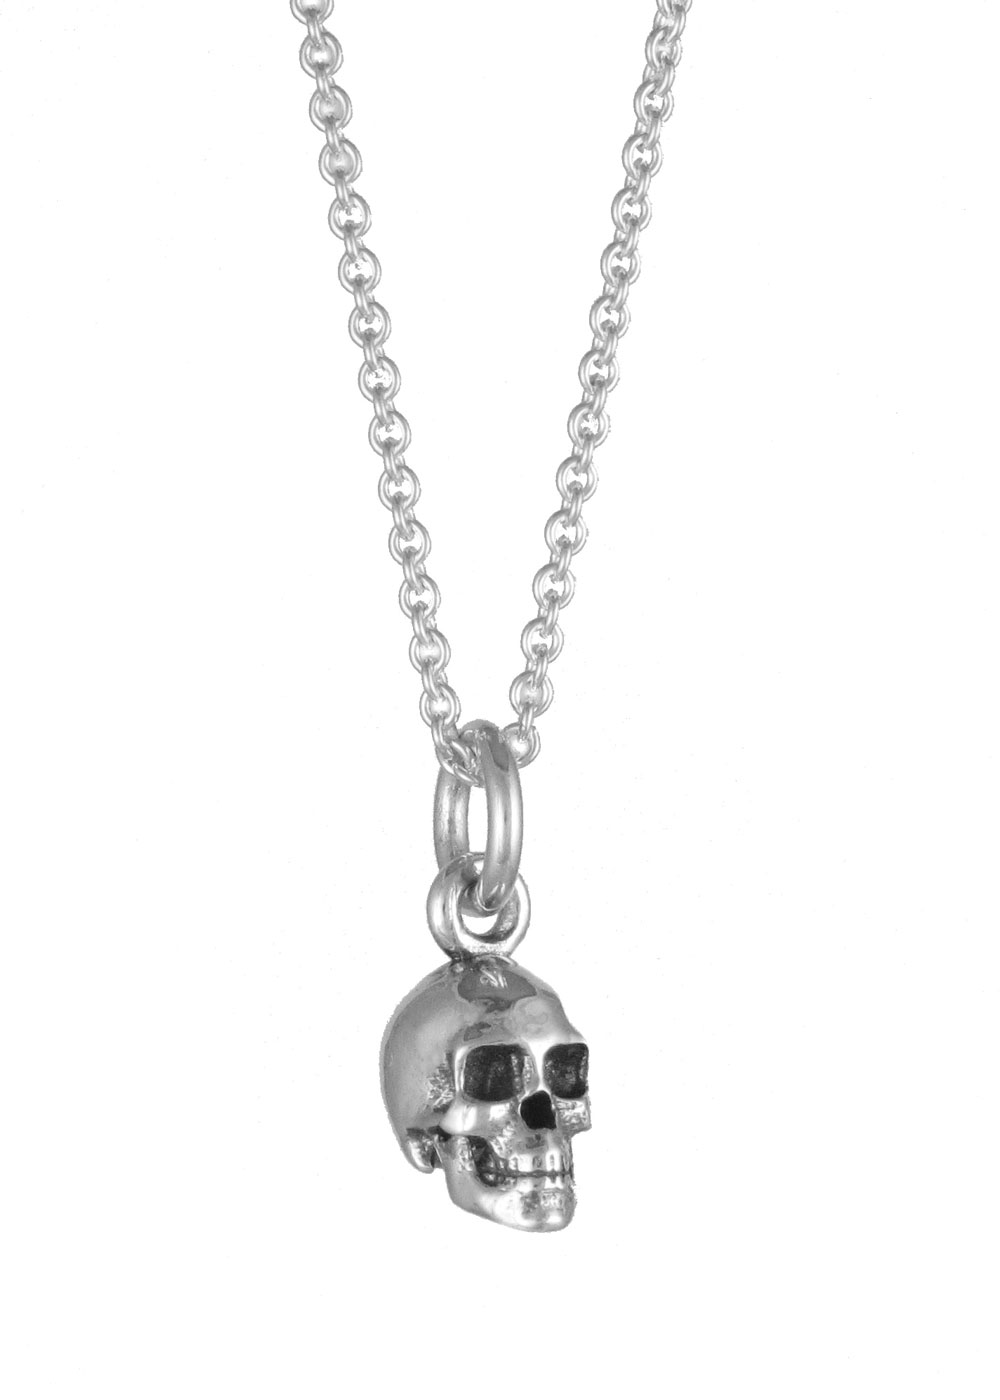 fashion skull necklace products punk new vintage man gifts product wholesale jewelry image steel chain mens pendant accessories com link stainless